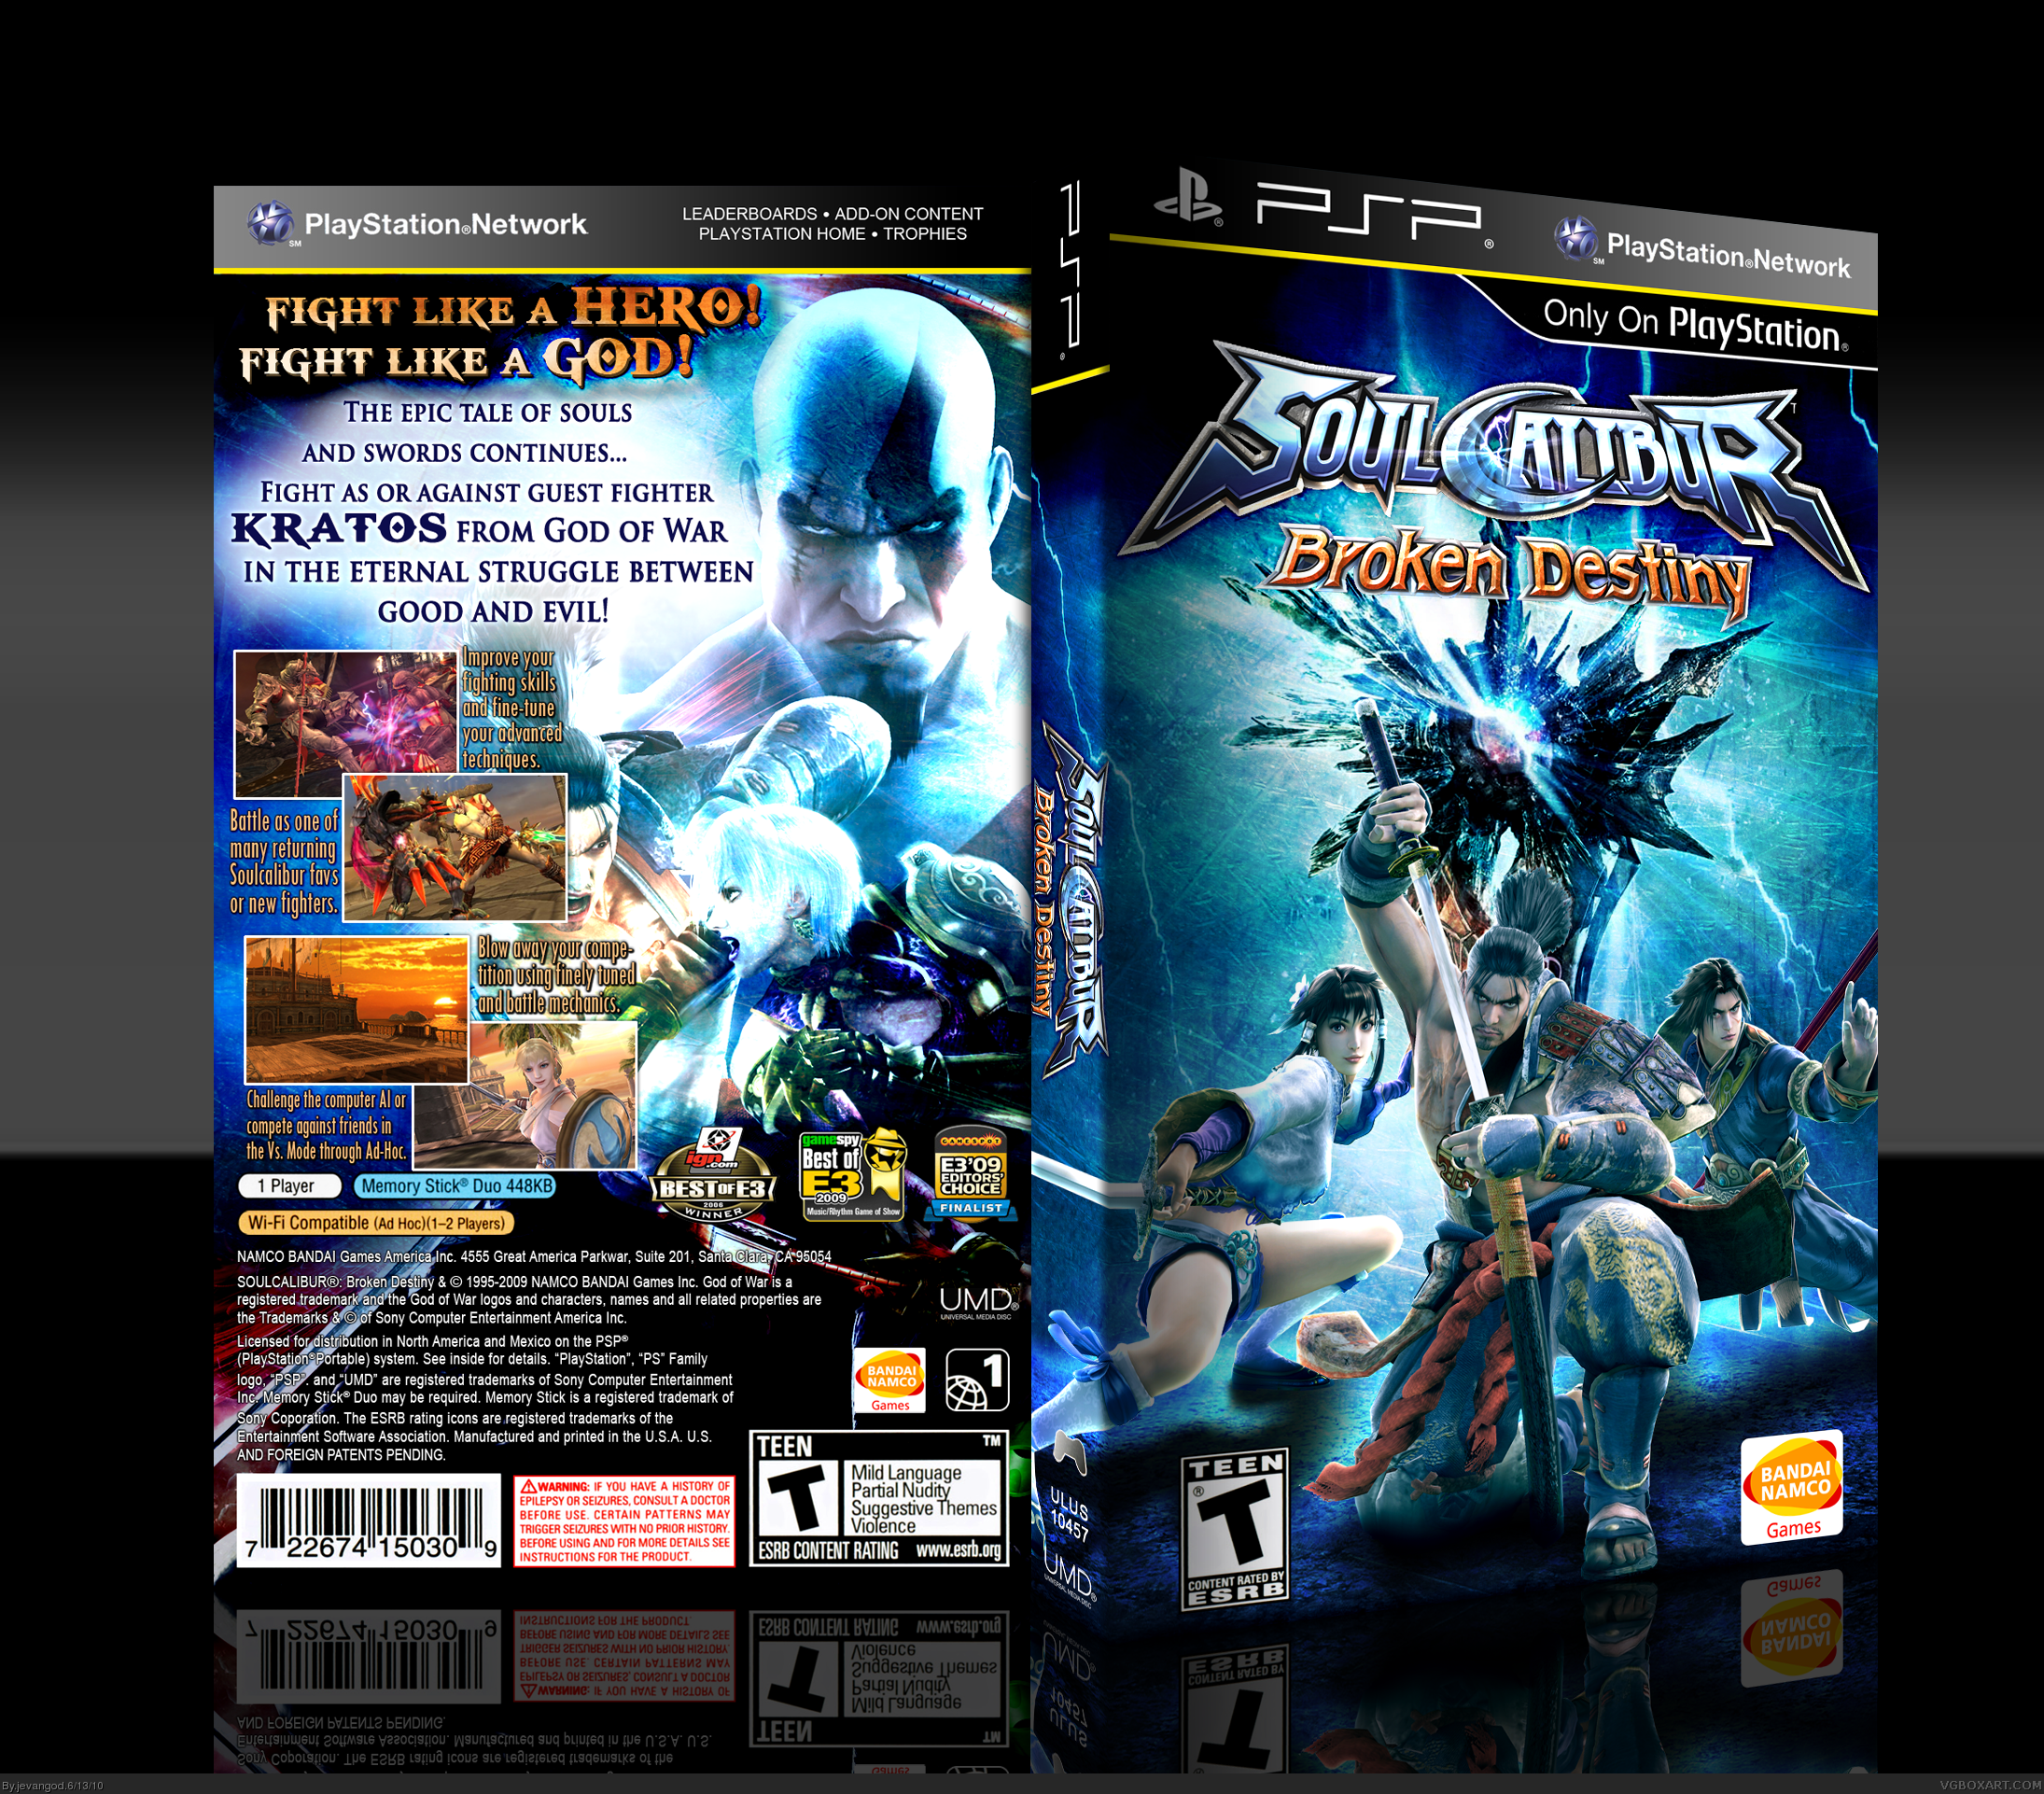 Soul calibur broken destiny nude mode erotic teens